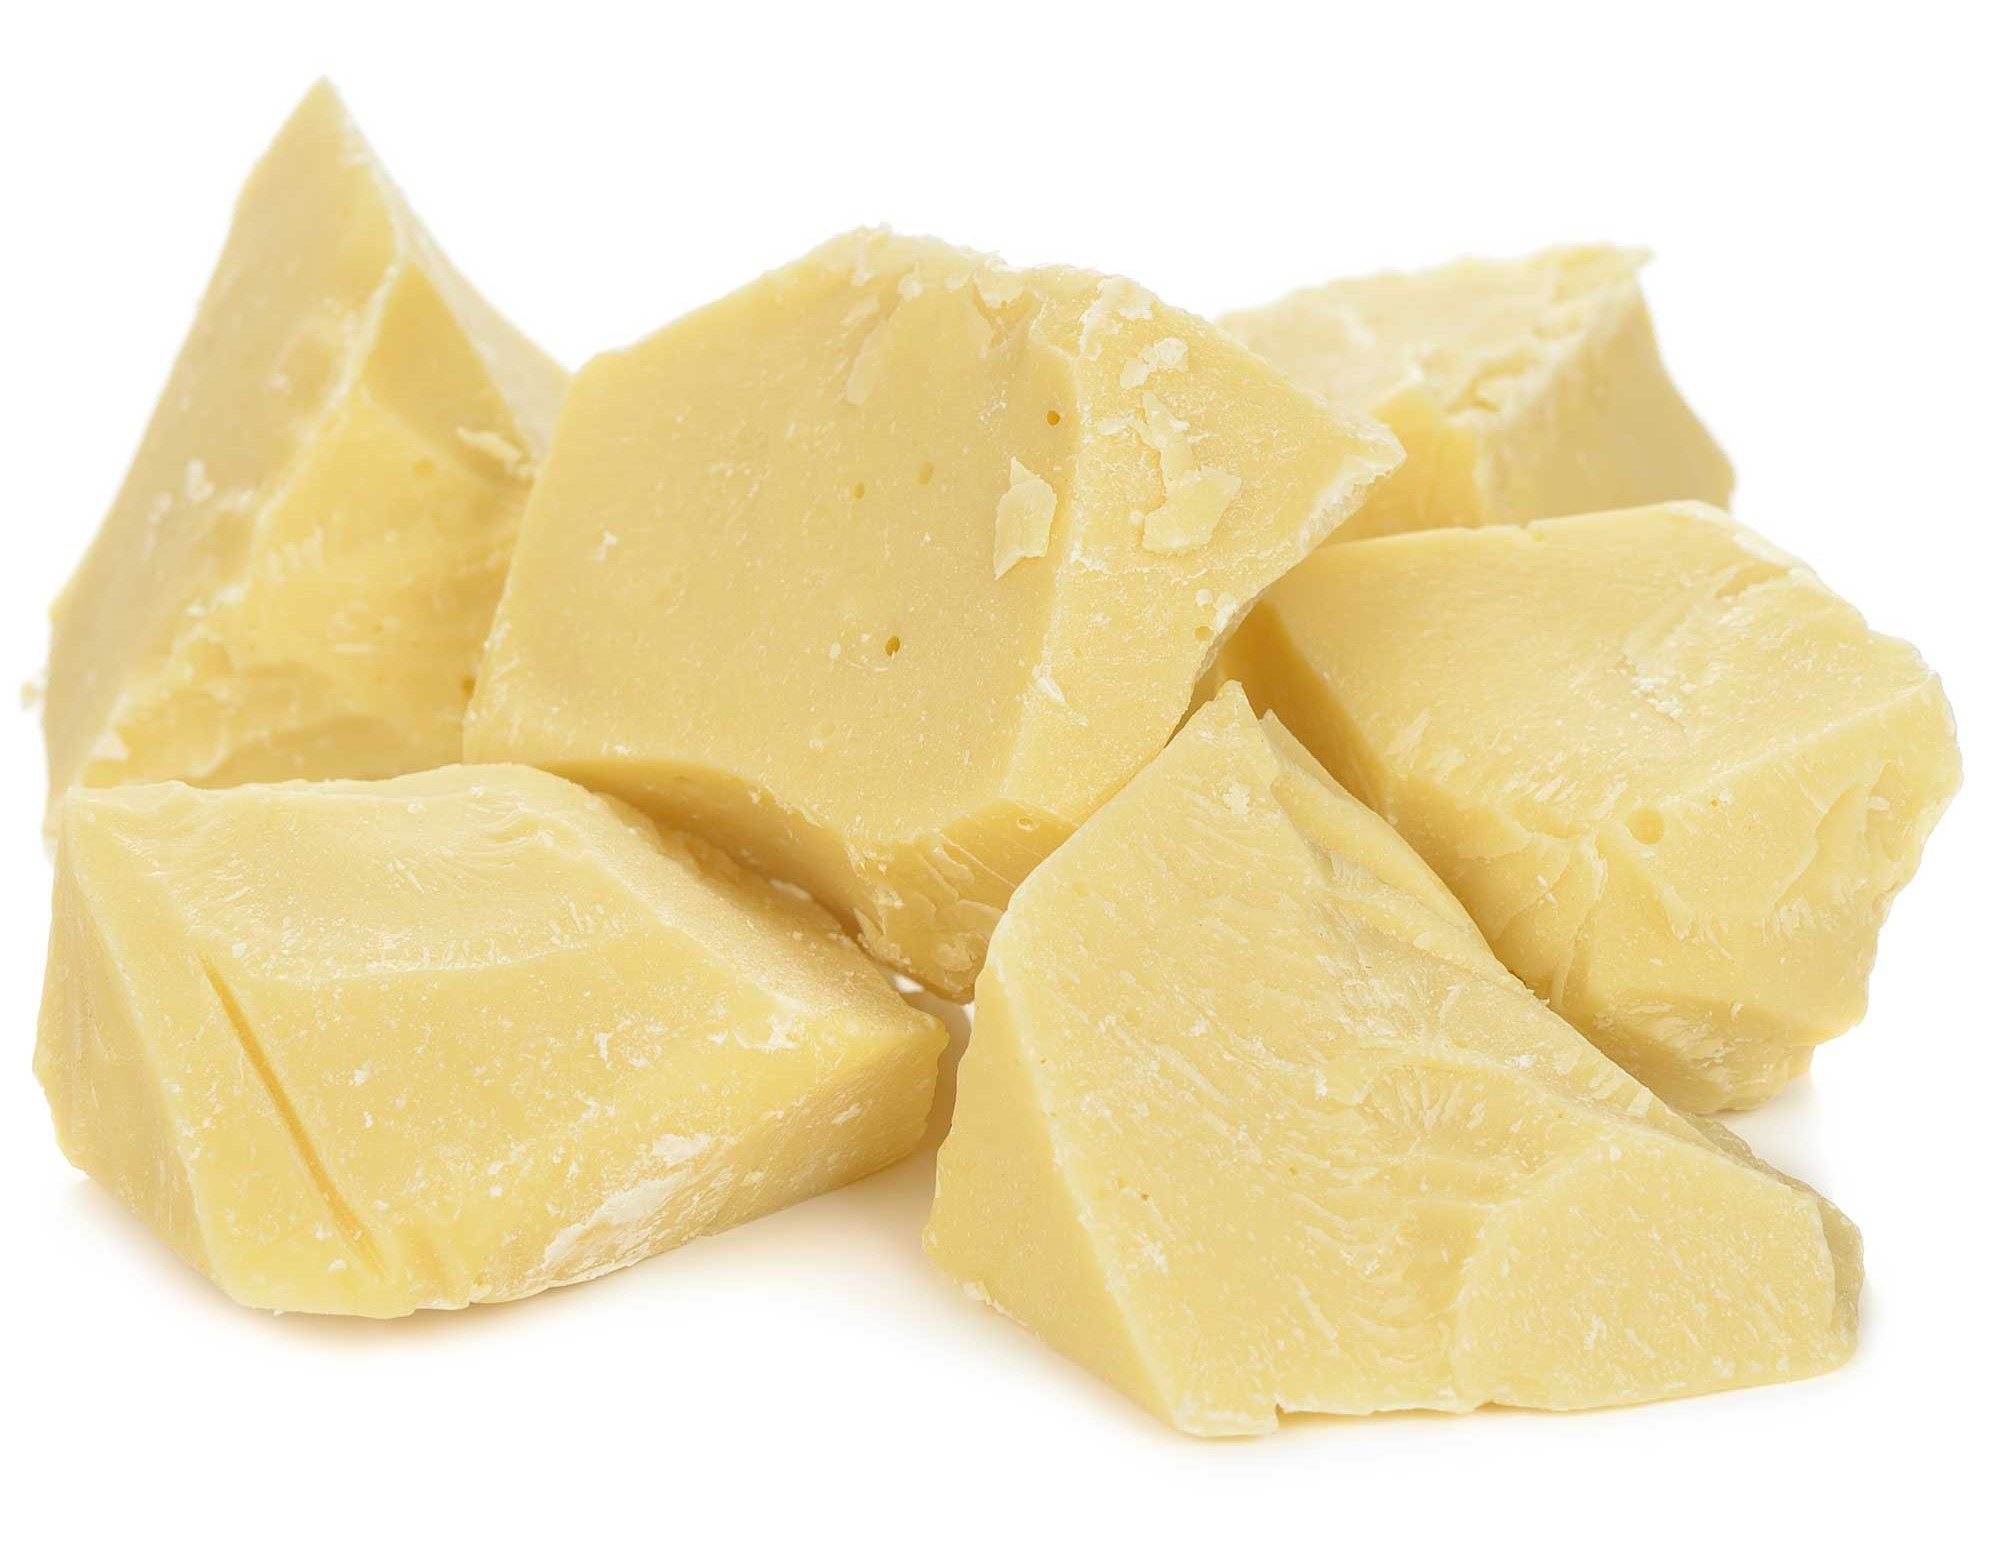 Raw 100% Pure Cocoa Butter Chunks by Its Delish, 3 lbs bulk by It's Delish (Image #1)